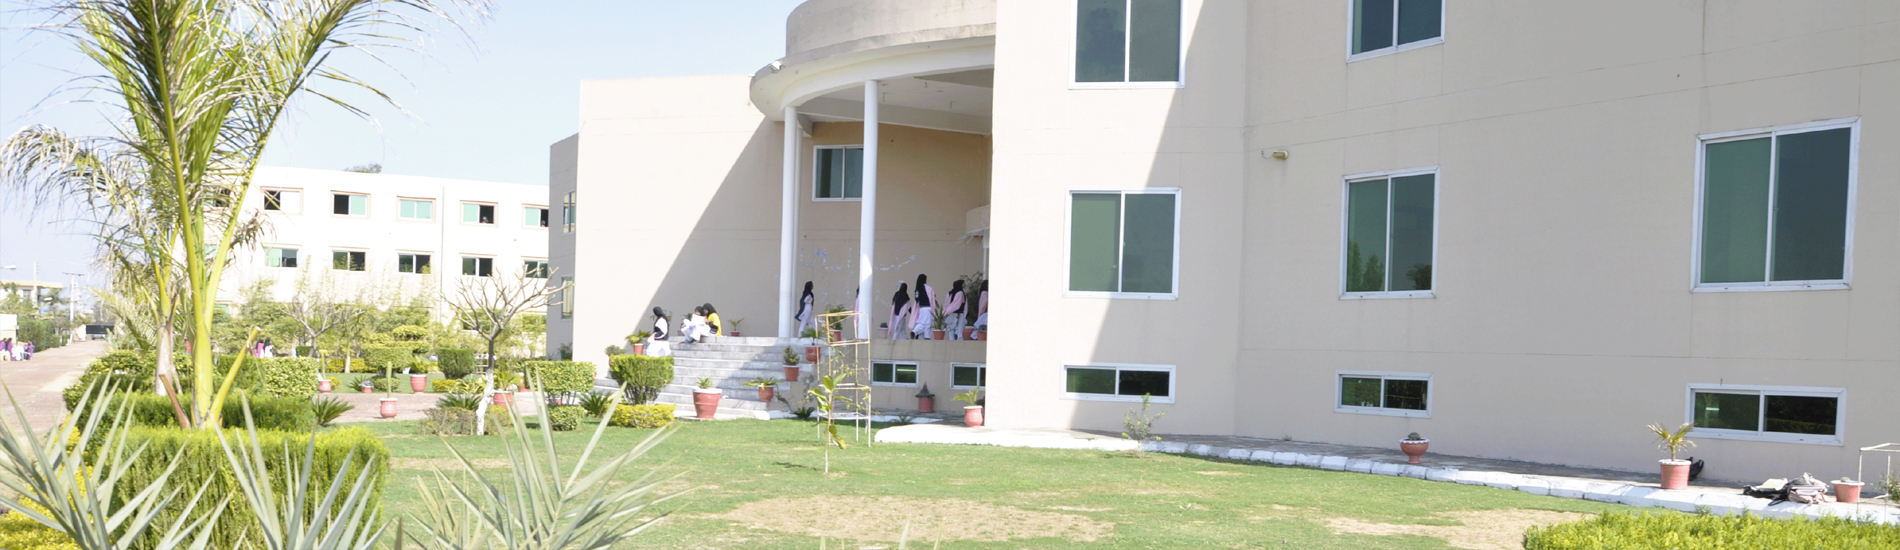 wisdom House Girls Degree College